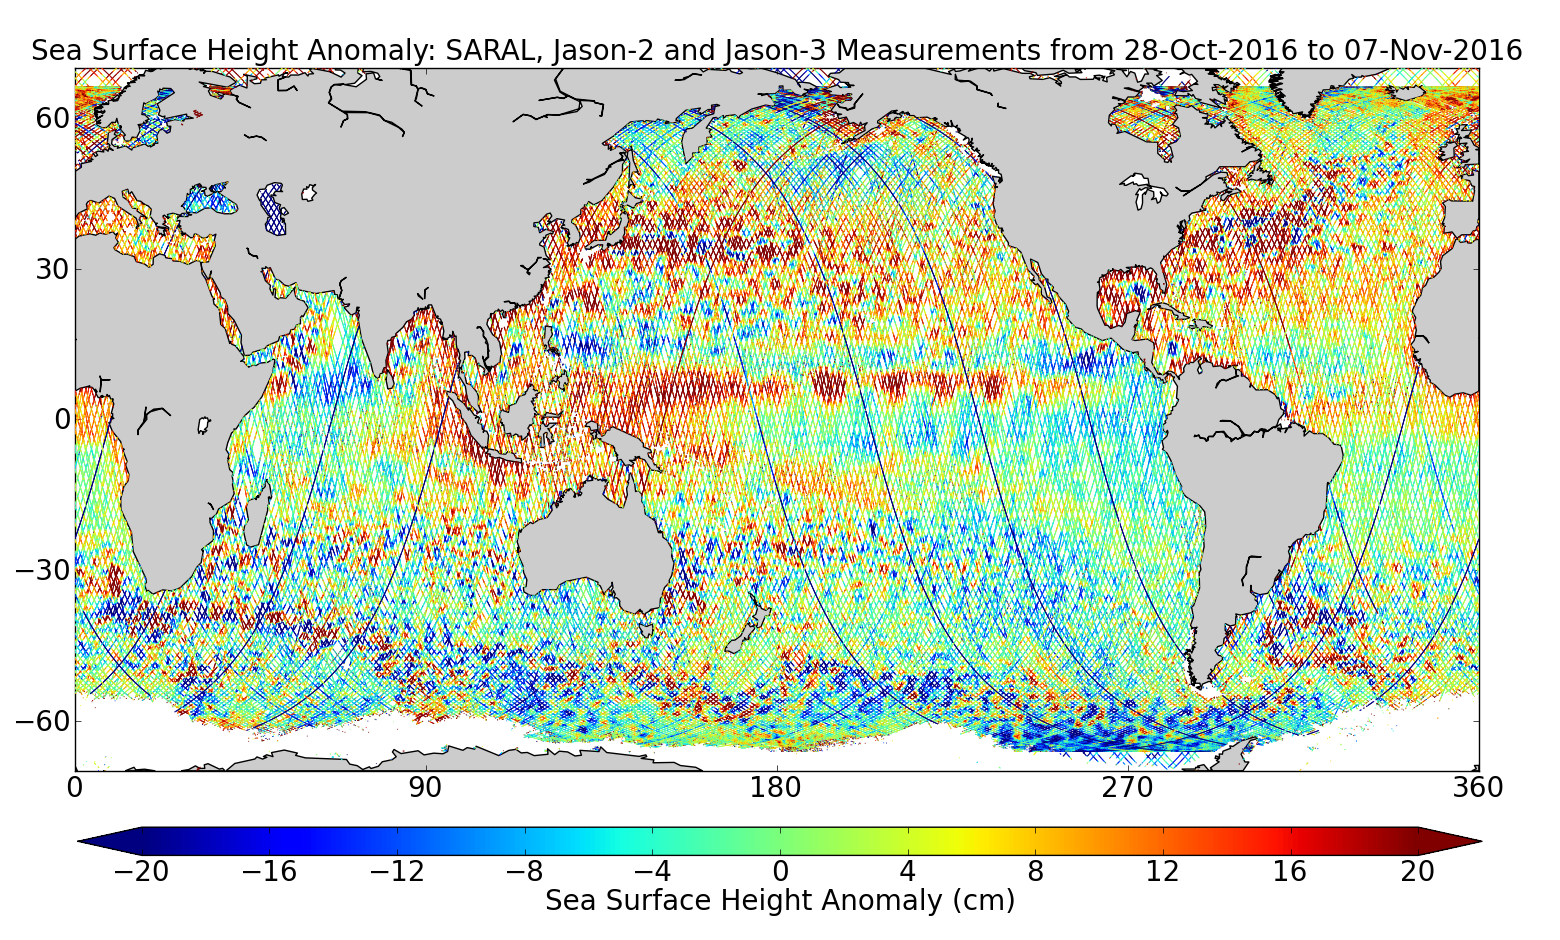 Sea Surface Height Anomaly: SARAL, Jason-2 and Jason-3 Measurements from 28-Oct-2016 to 07-Nov-2016